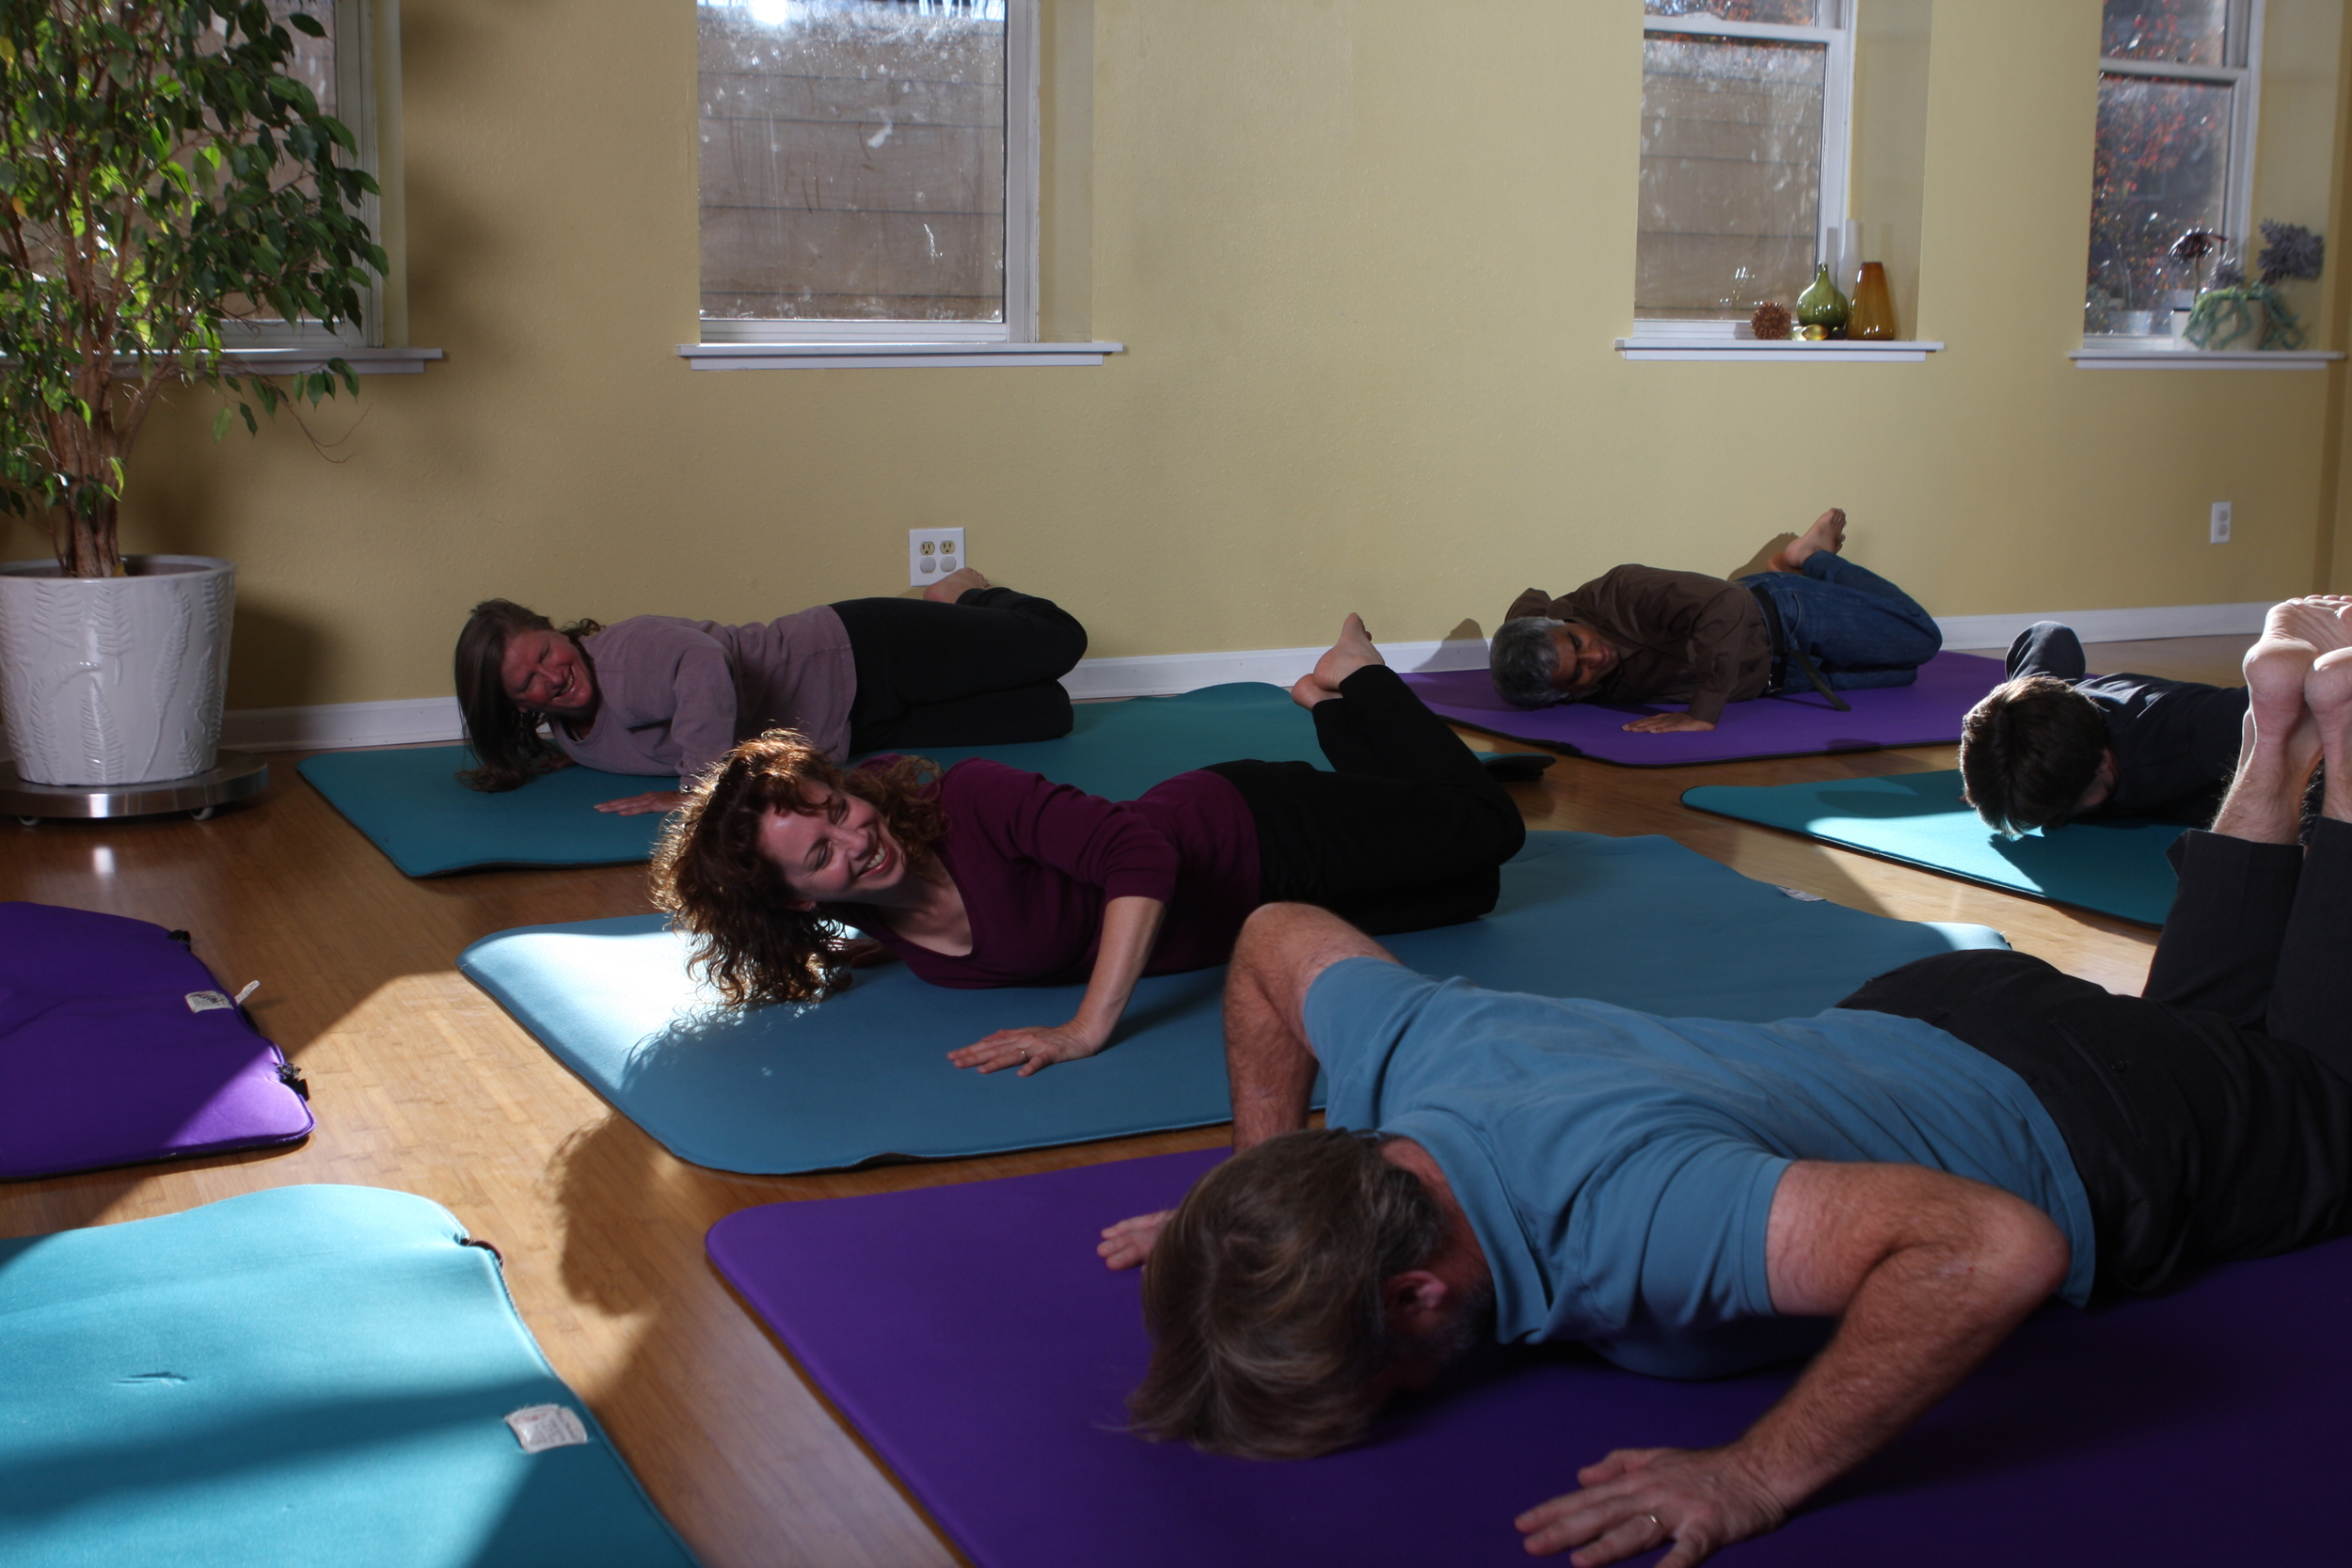 [from left]  Carrie Lafferty, Beth Cooper and others exploring effortless movement in an Awareness Through Movement class.